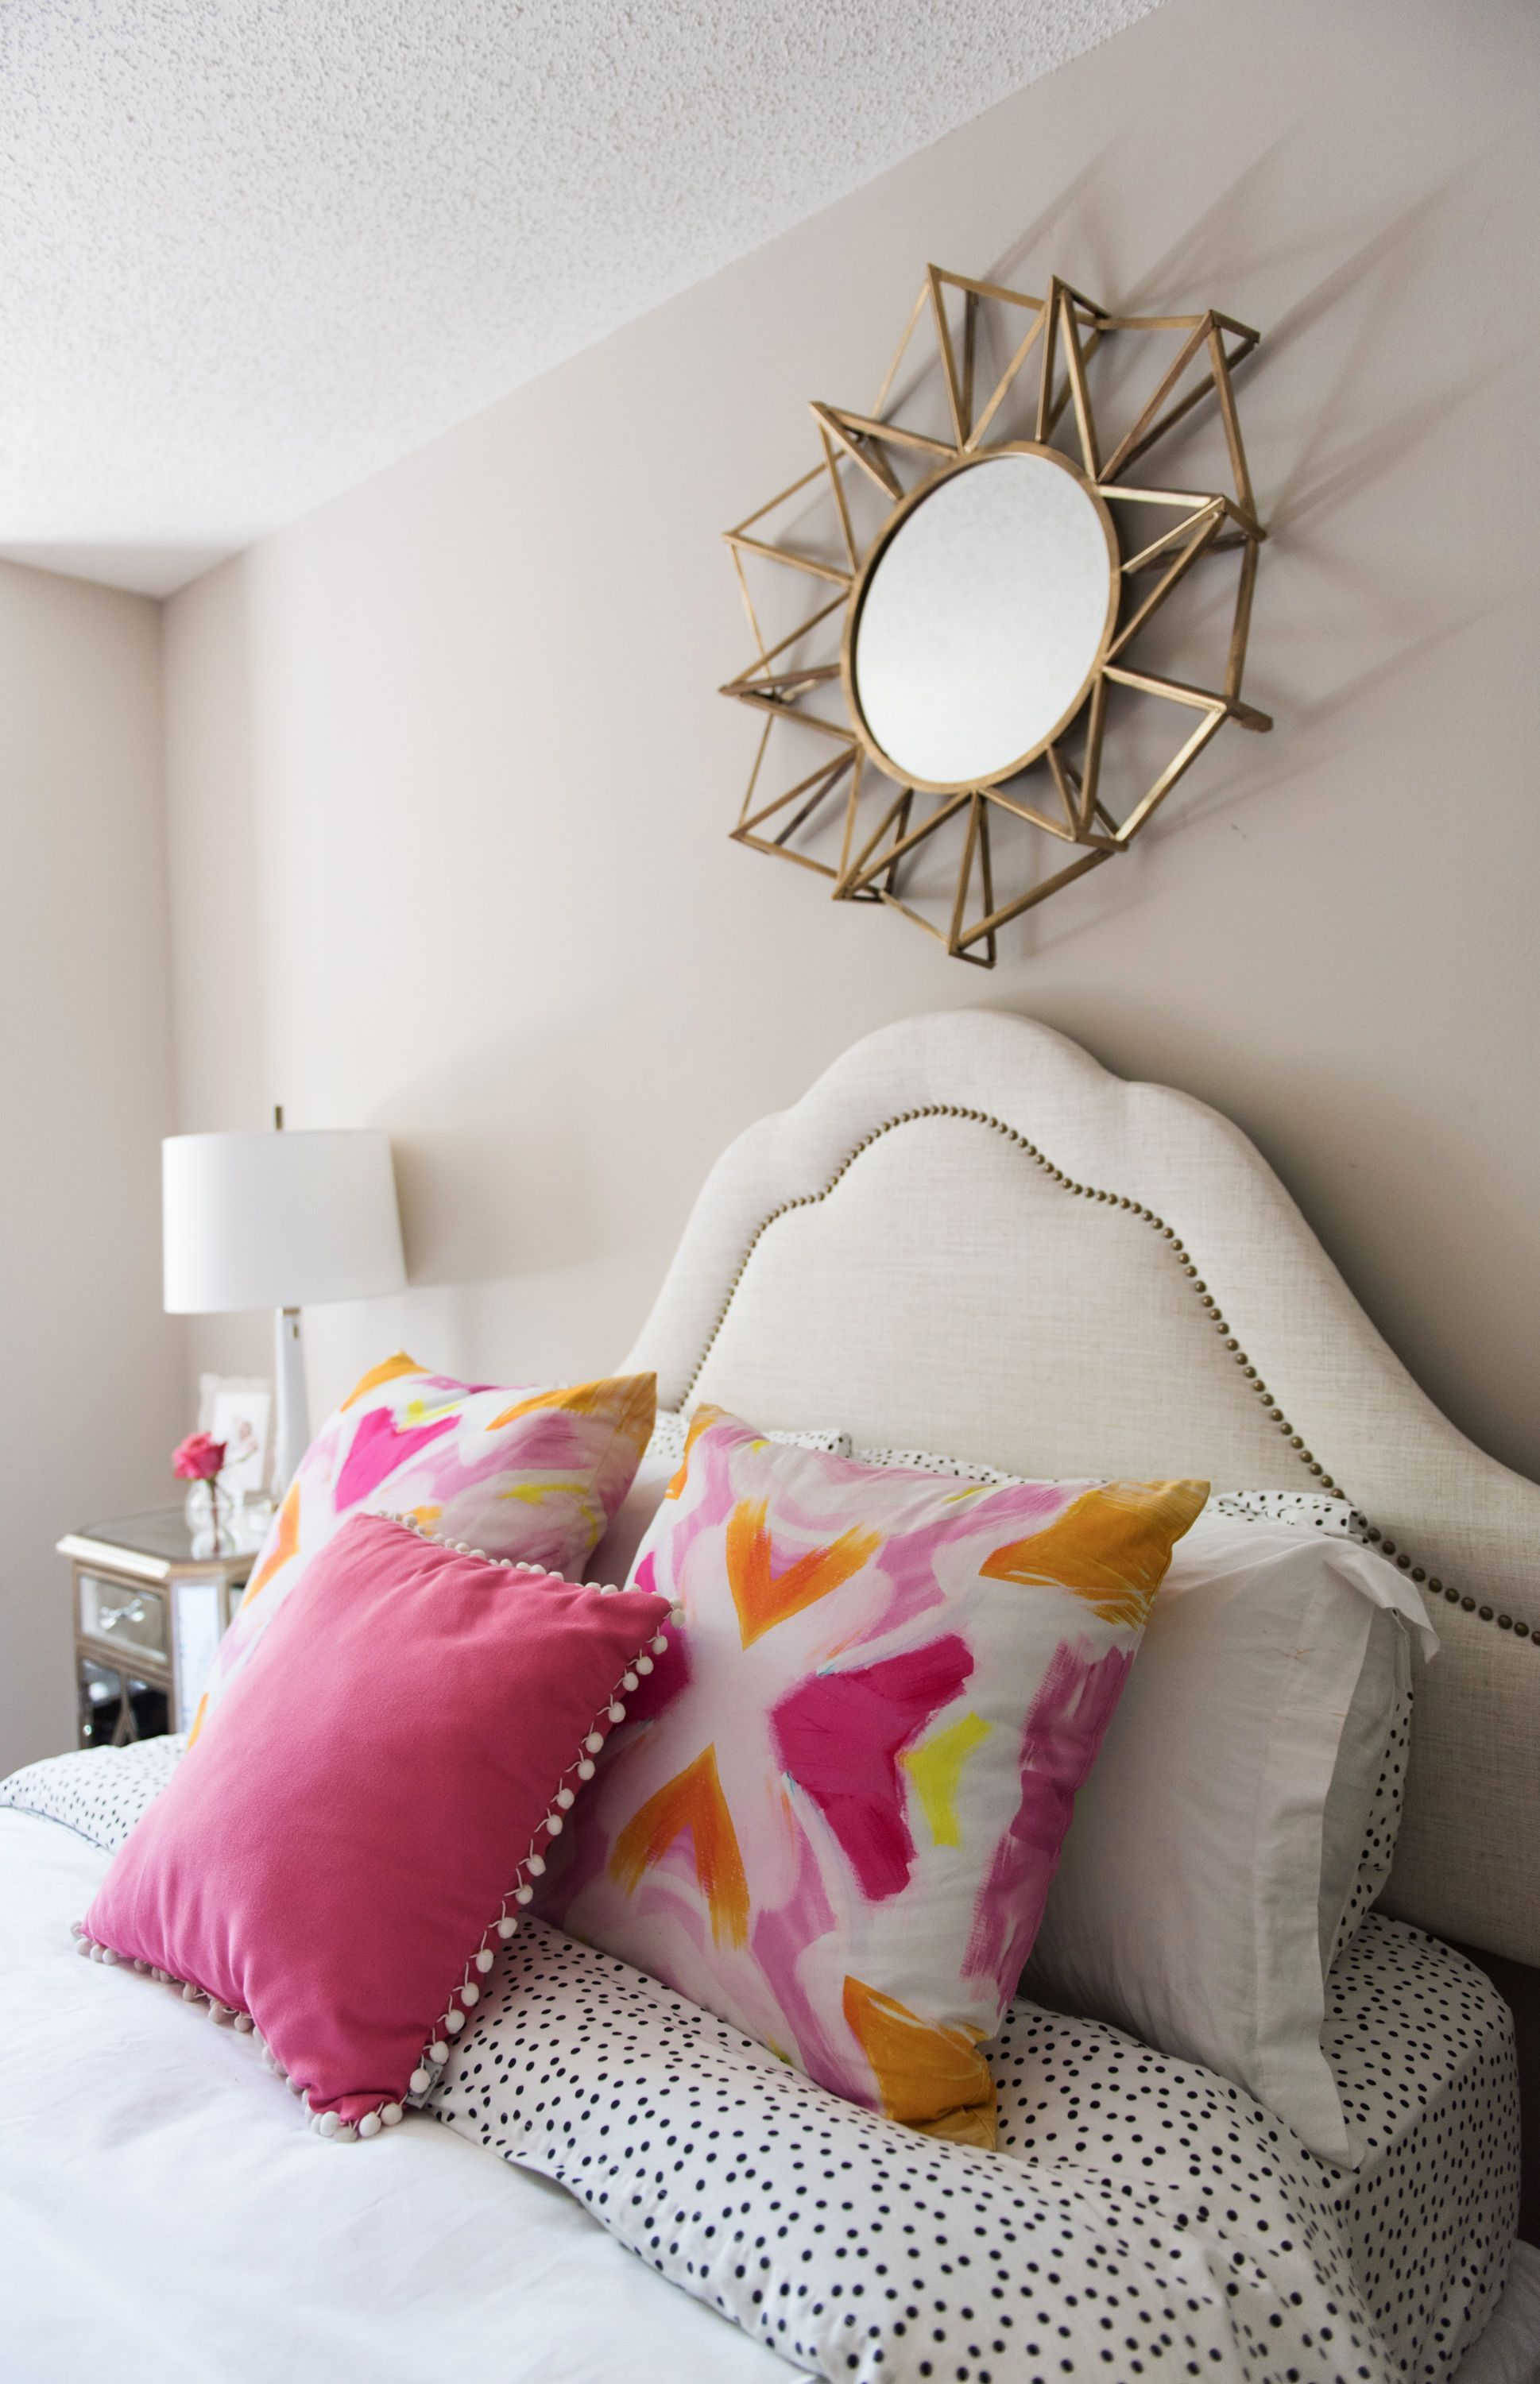 Studded Headboard And Feminine Accents = Perfect Girly Chic Bedroom